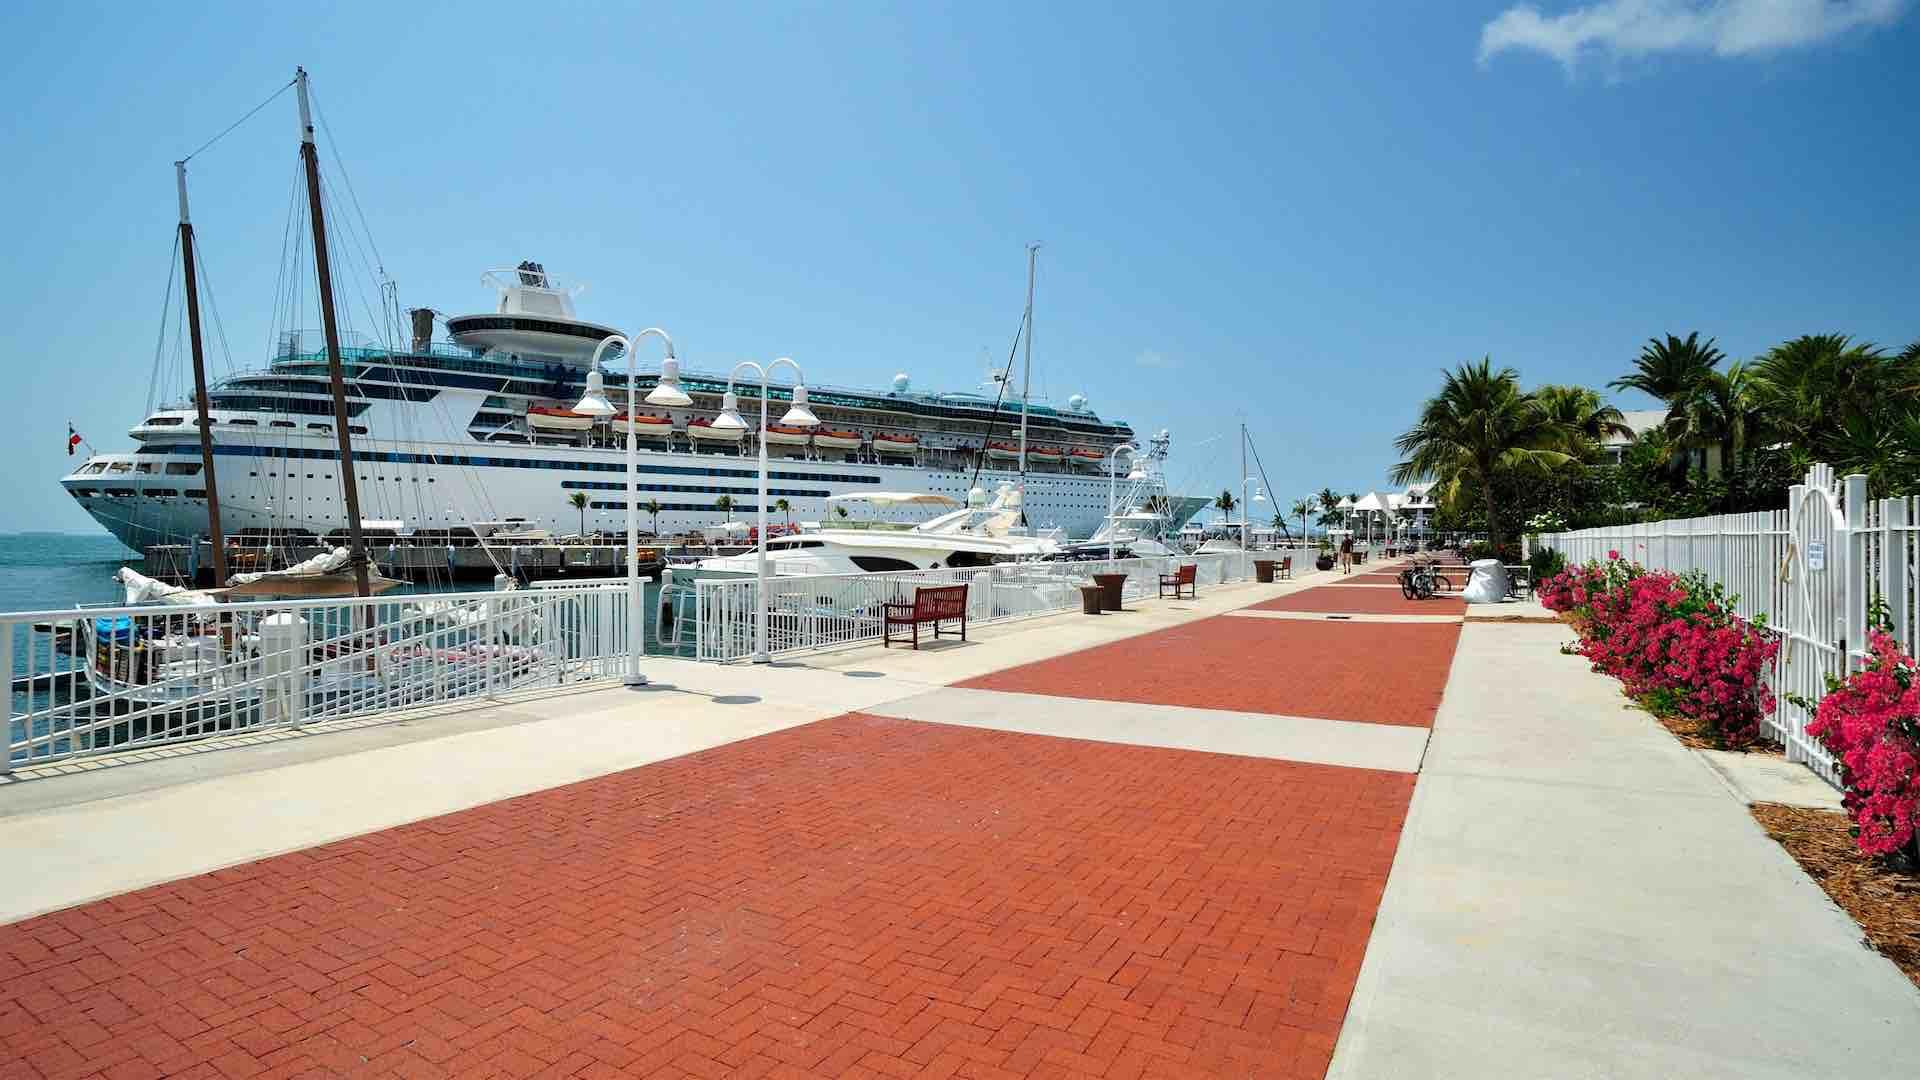 The promenade leads directly to Mallory Square...